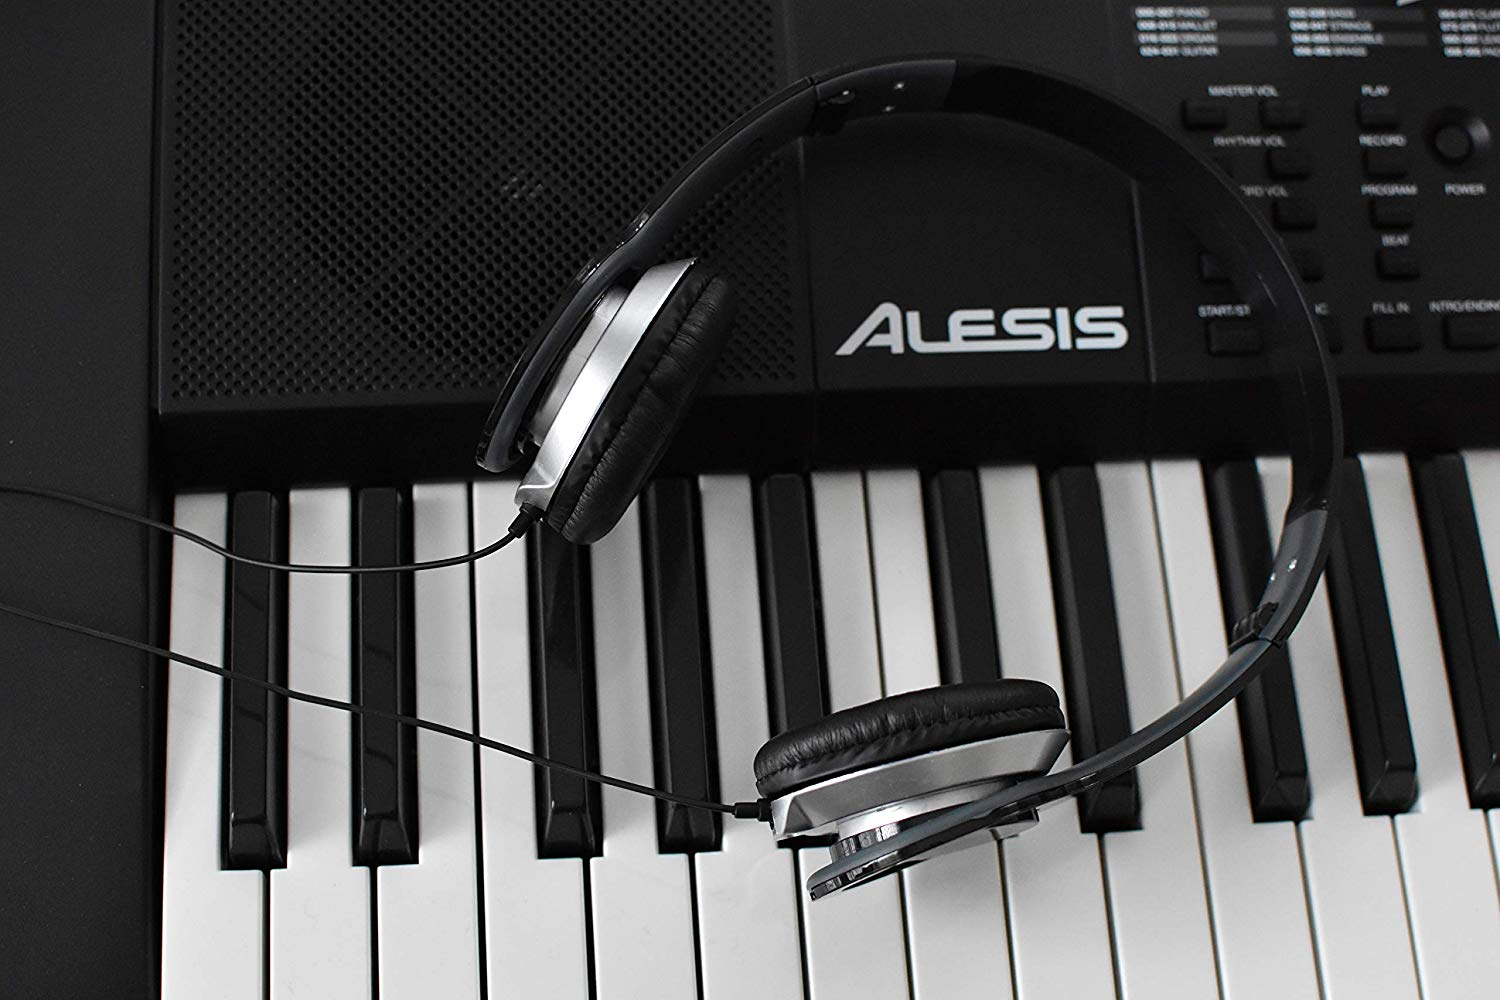 Alesis Melody 61 Review Is This Piano Any Good